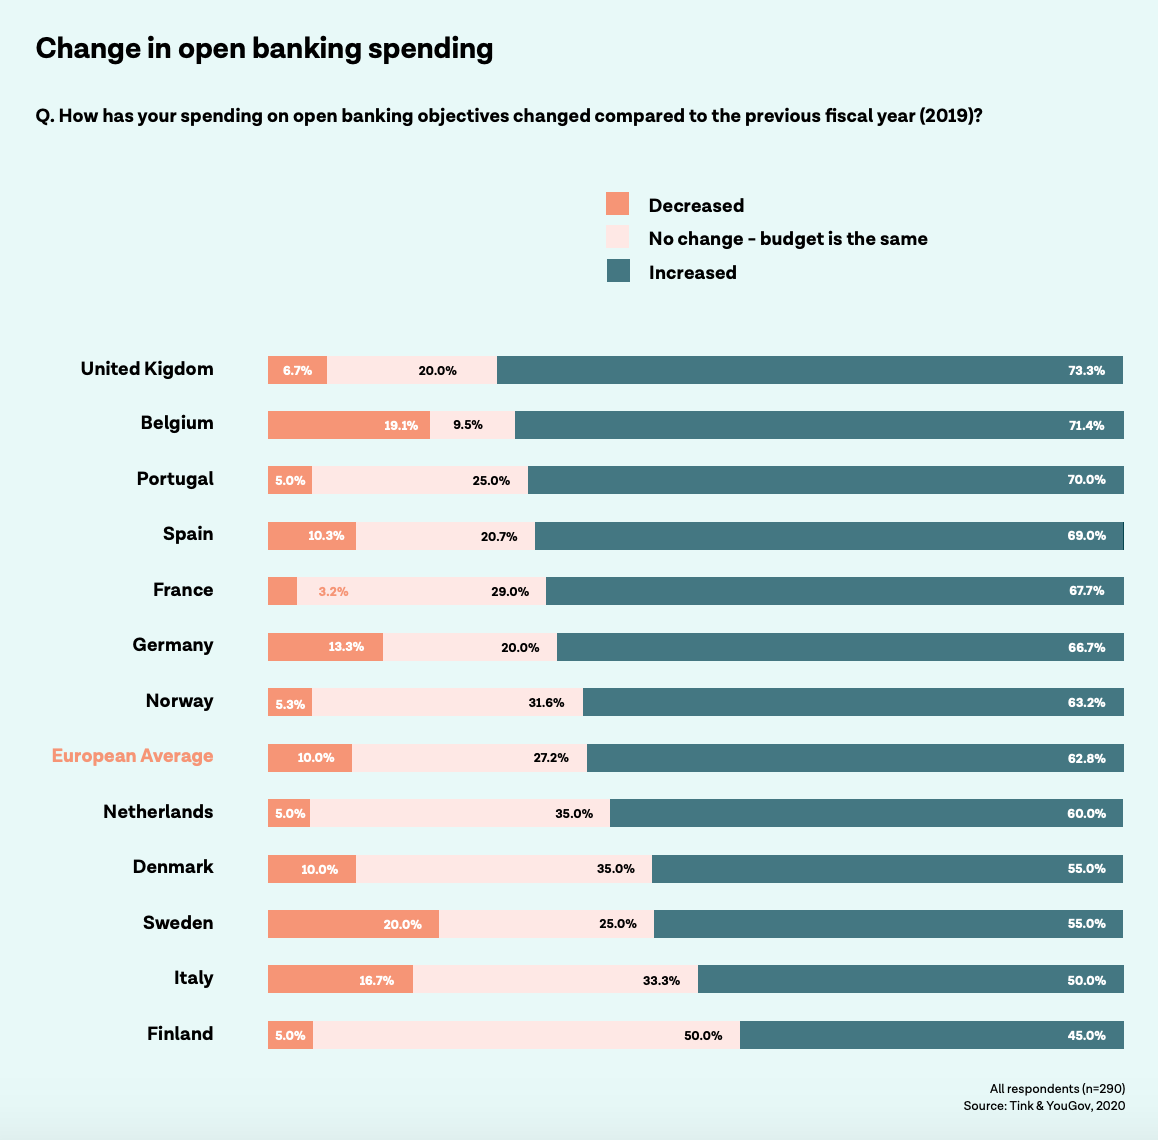 Image: Change in open banking spending, The investments and returns of open banking, Source: Tink & YouGov, 2020